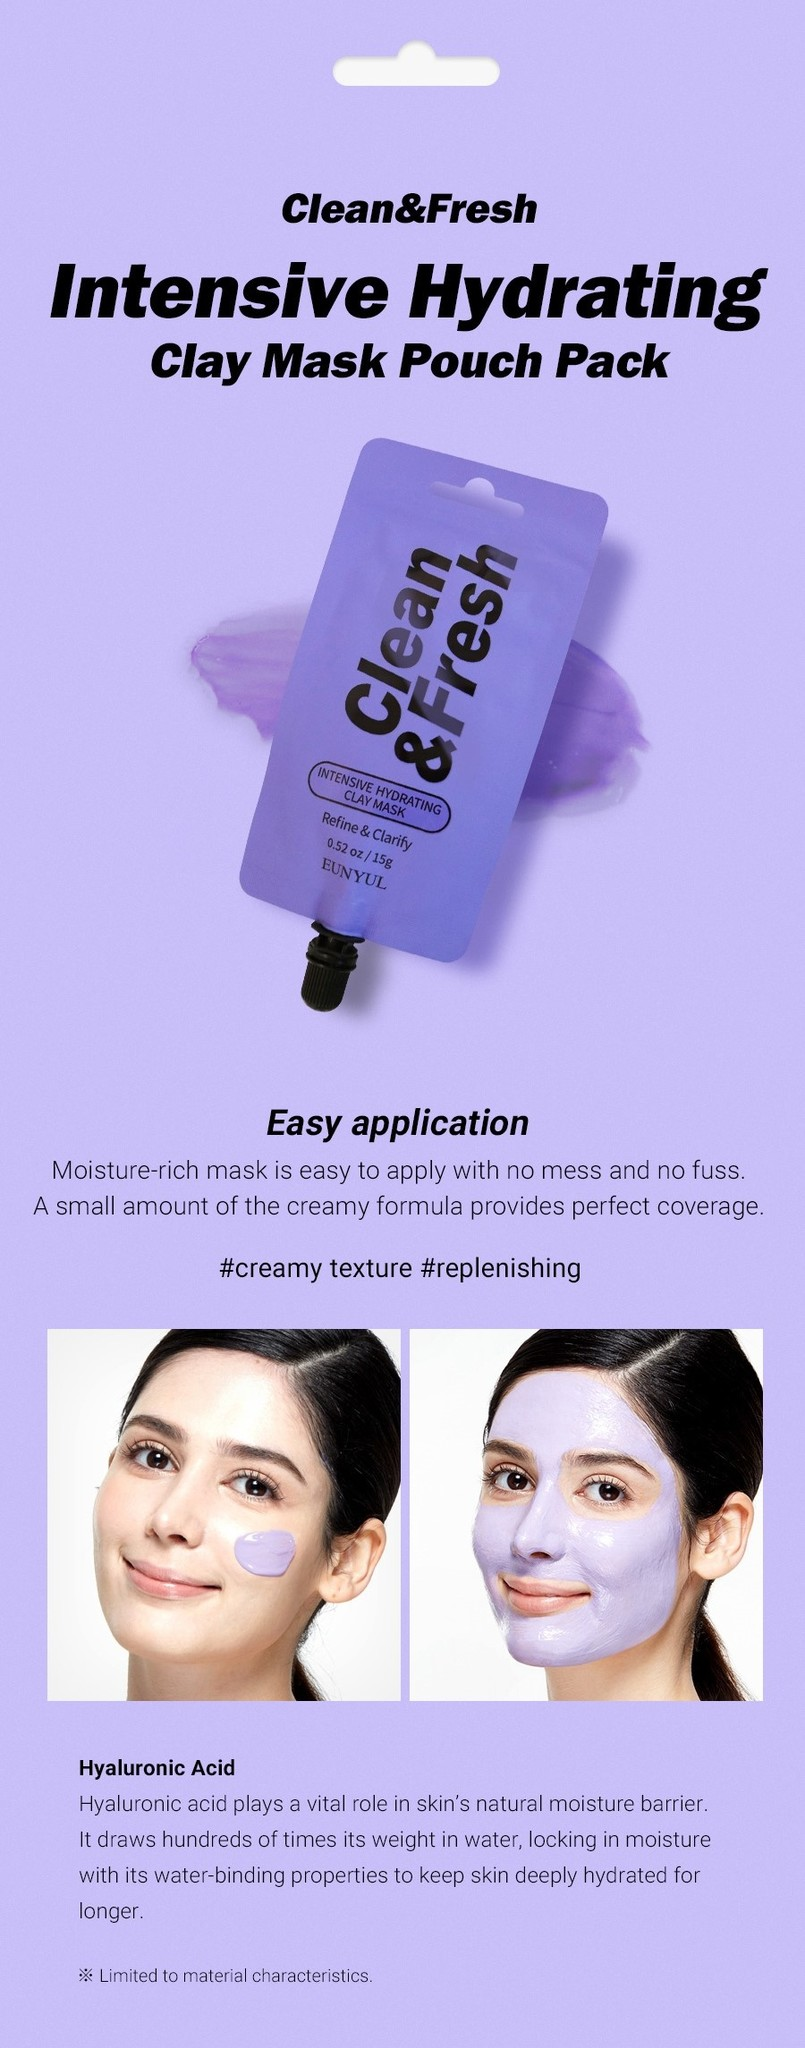 Clean & Fresh Clay Mask Pouch Pack - Intense Hydrating-4